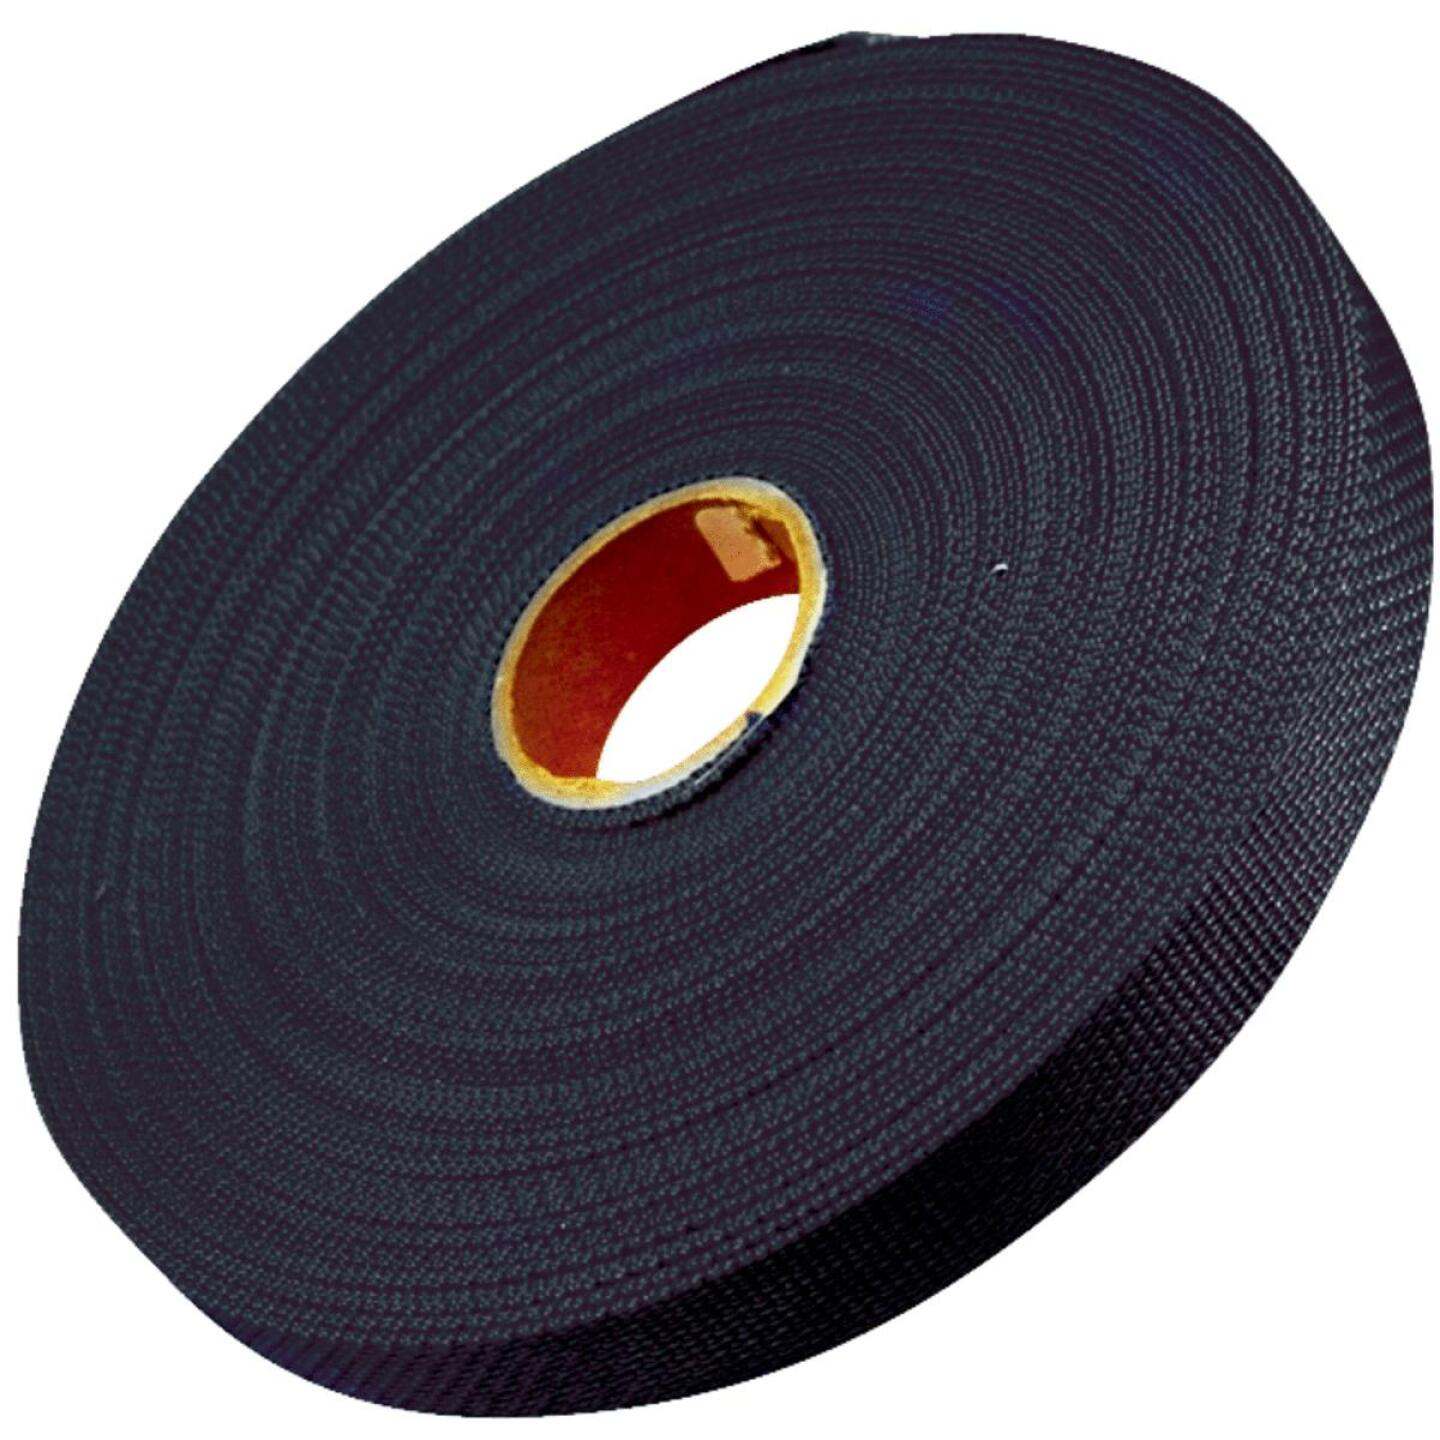 TURF 3/4 In. x 300 Ft. Black Light-Duty Polypropylene Strapping Image 1